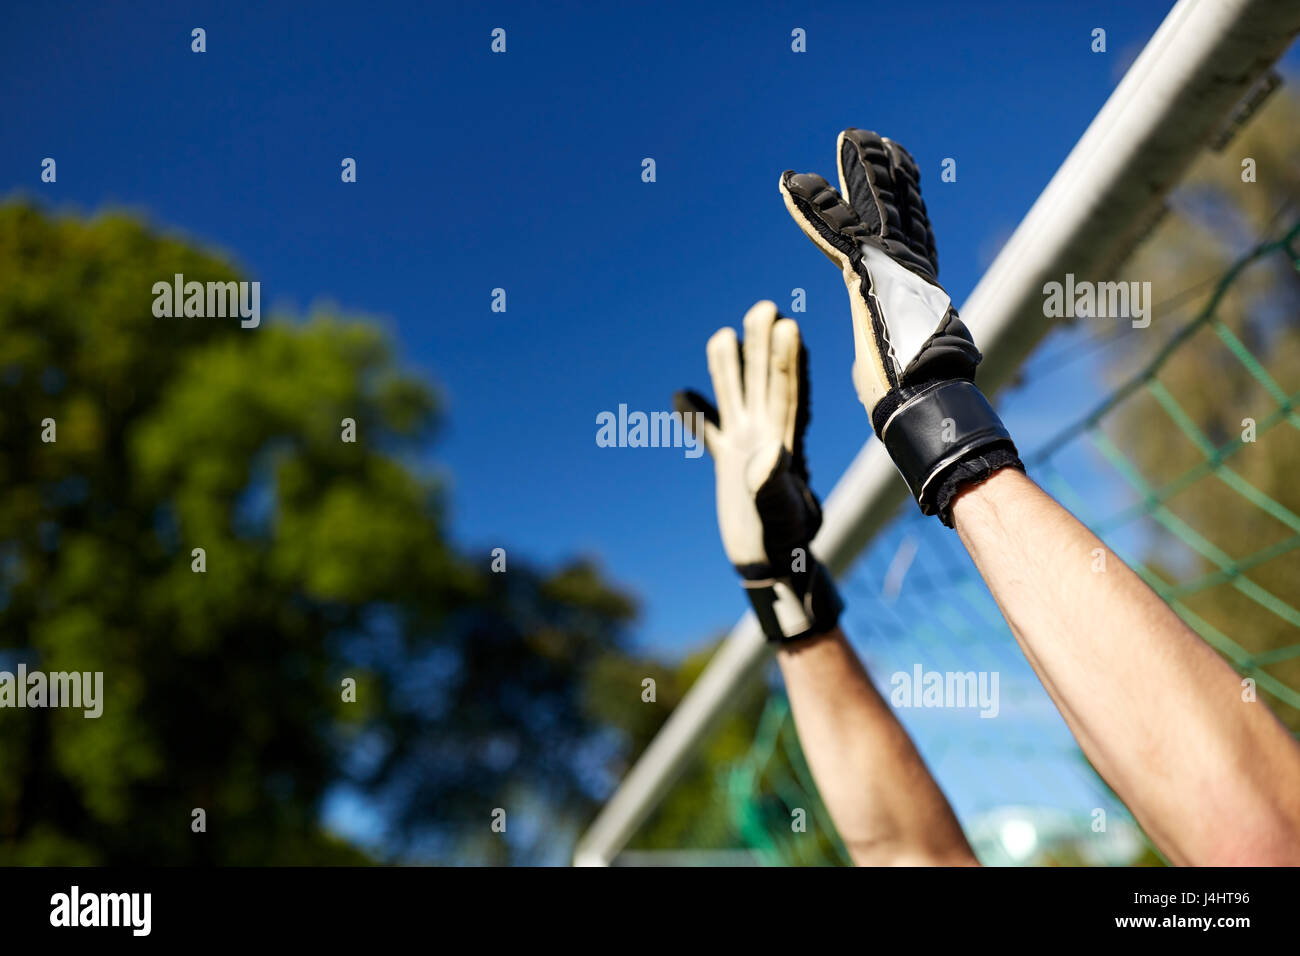 goalkeeper or soccer player at football goal - Stock Image